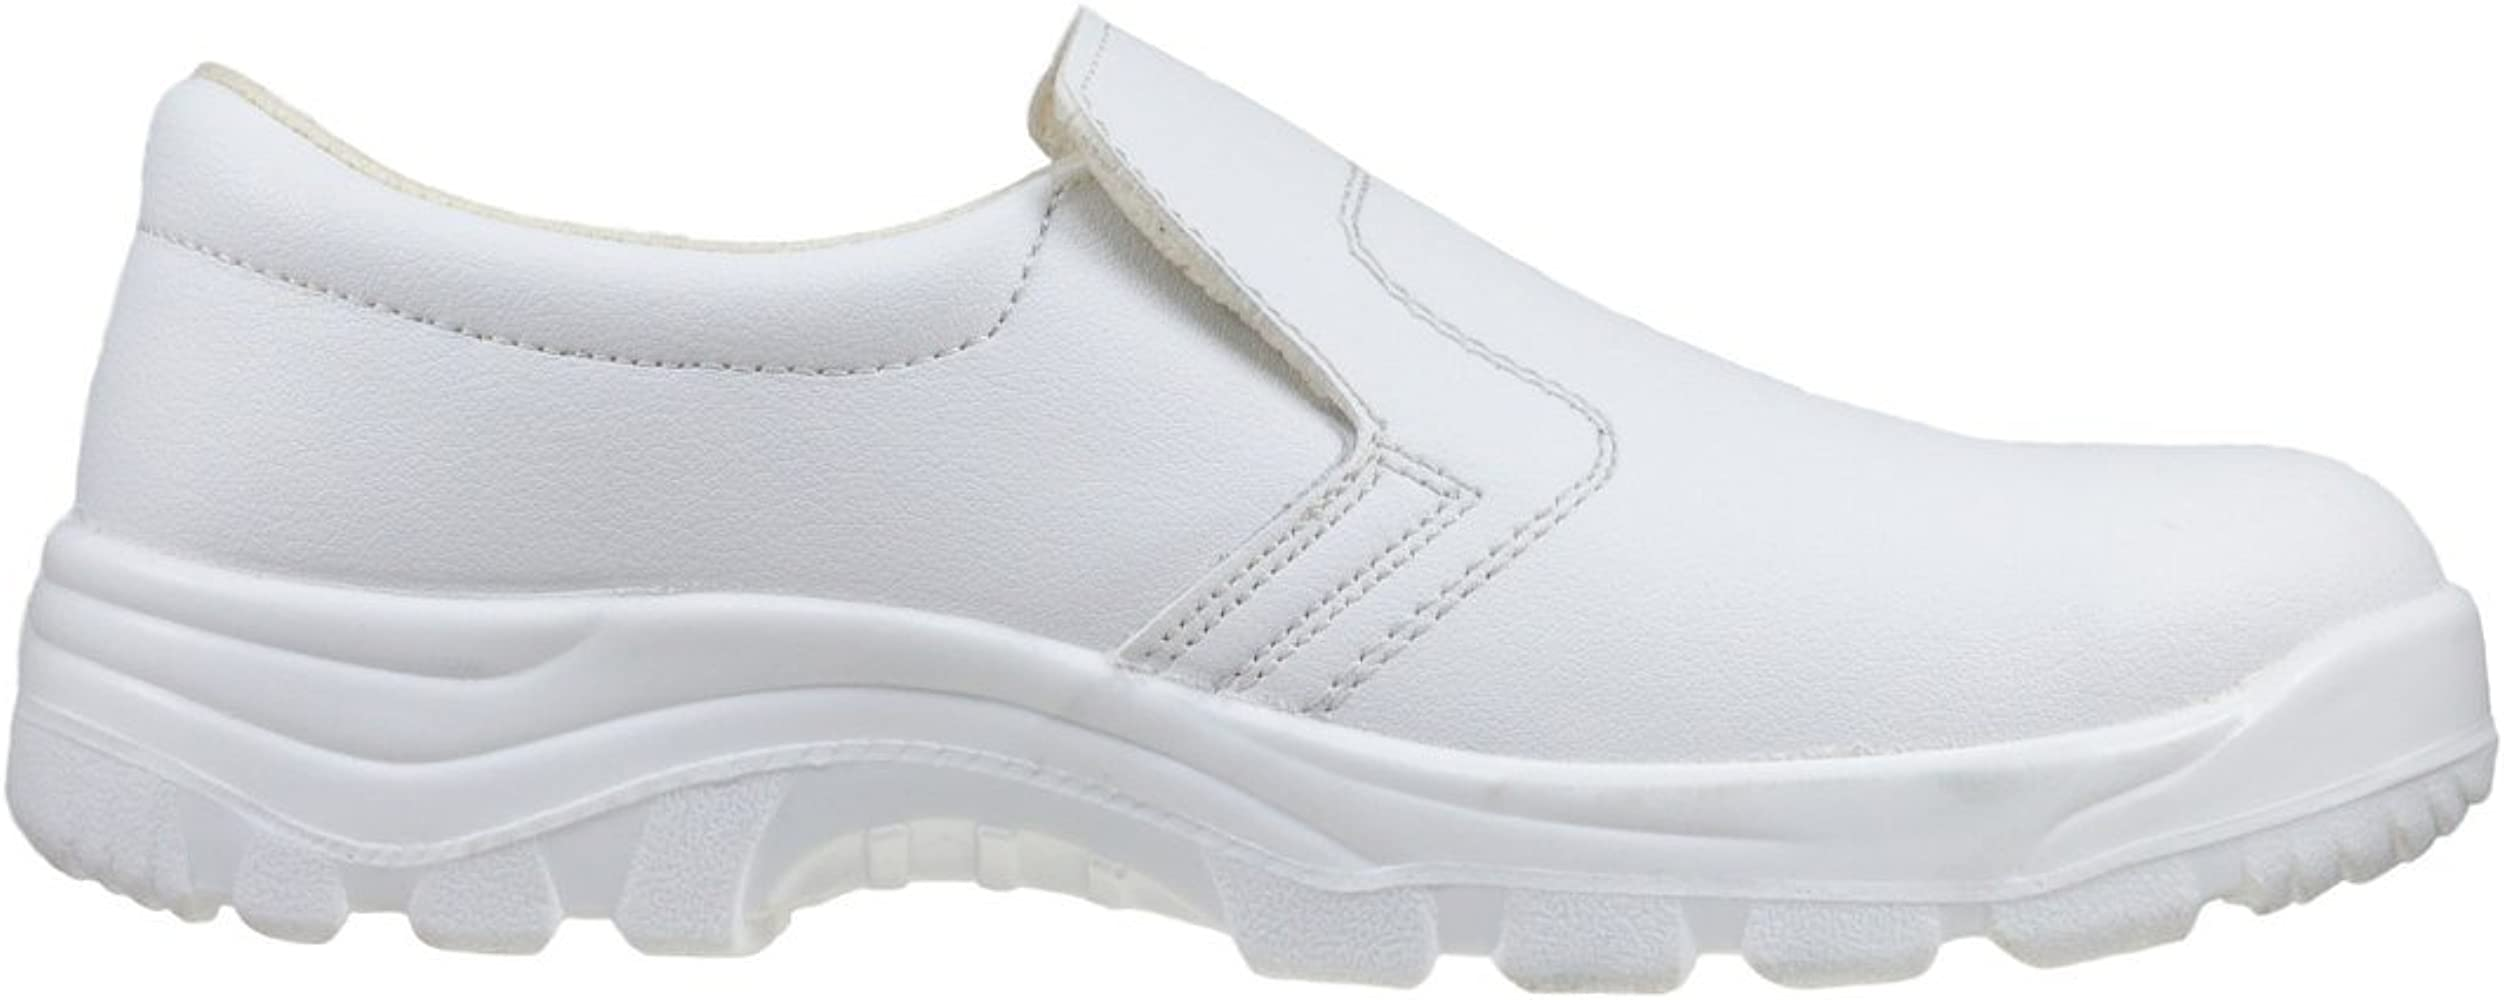 White Safety Shoes Metal Toe Cap Anty